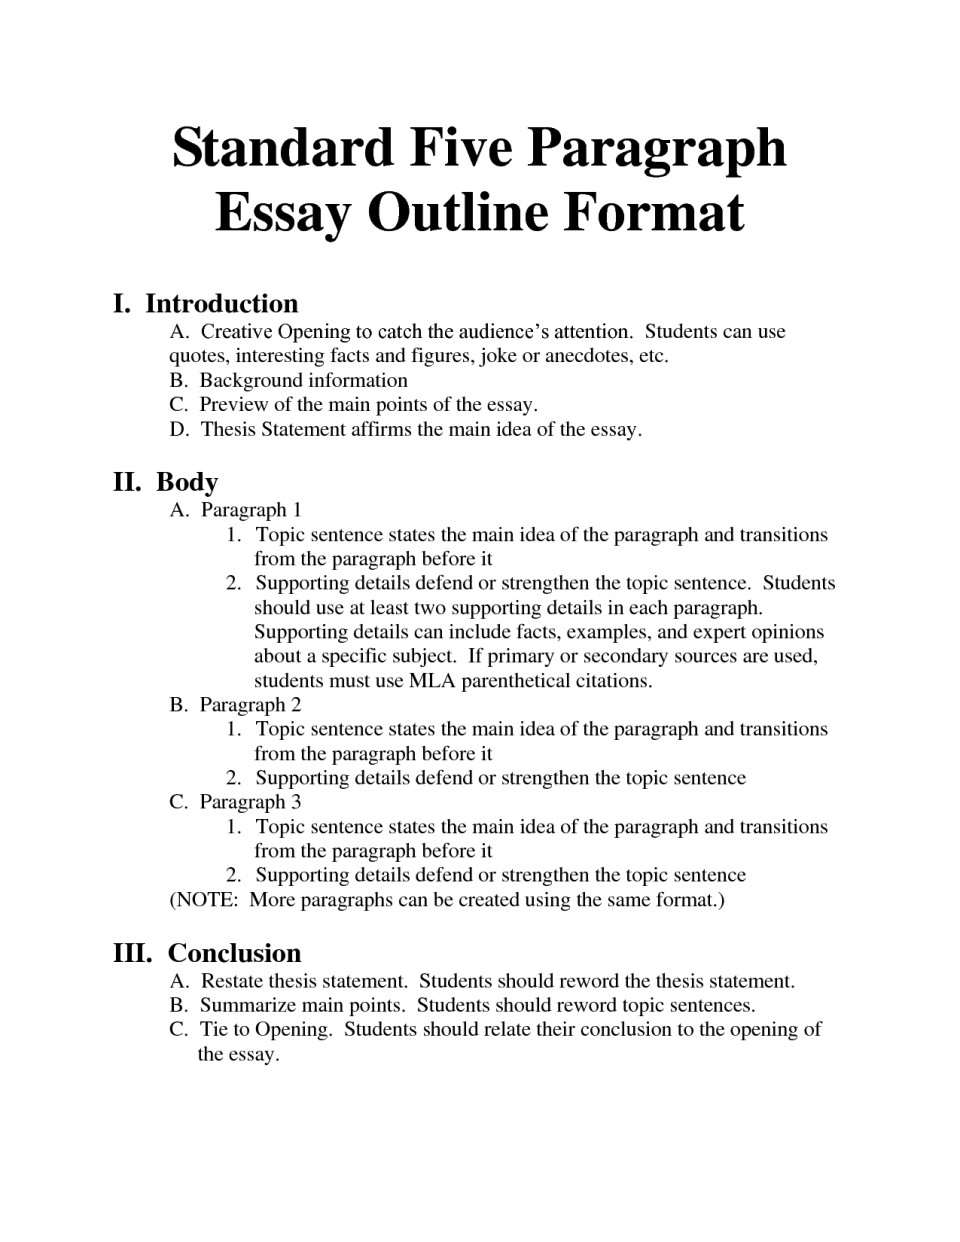 Features of a good essay introduction